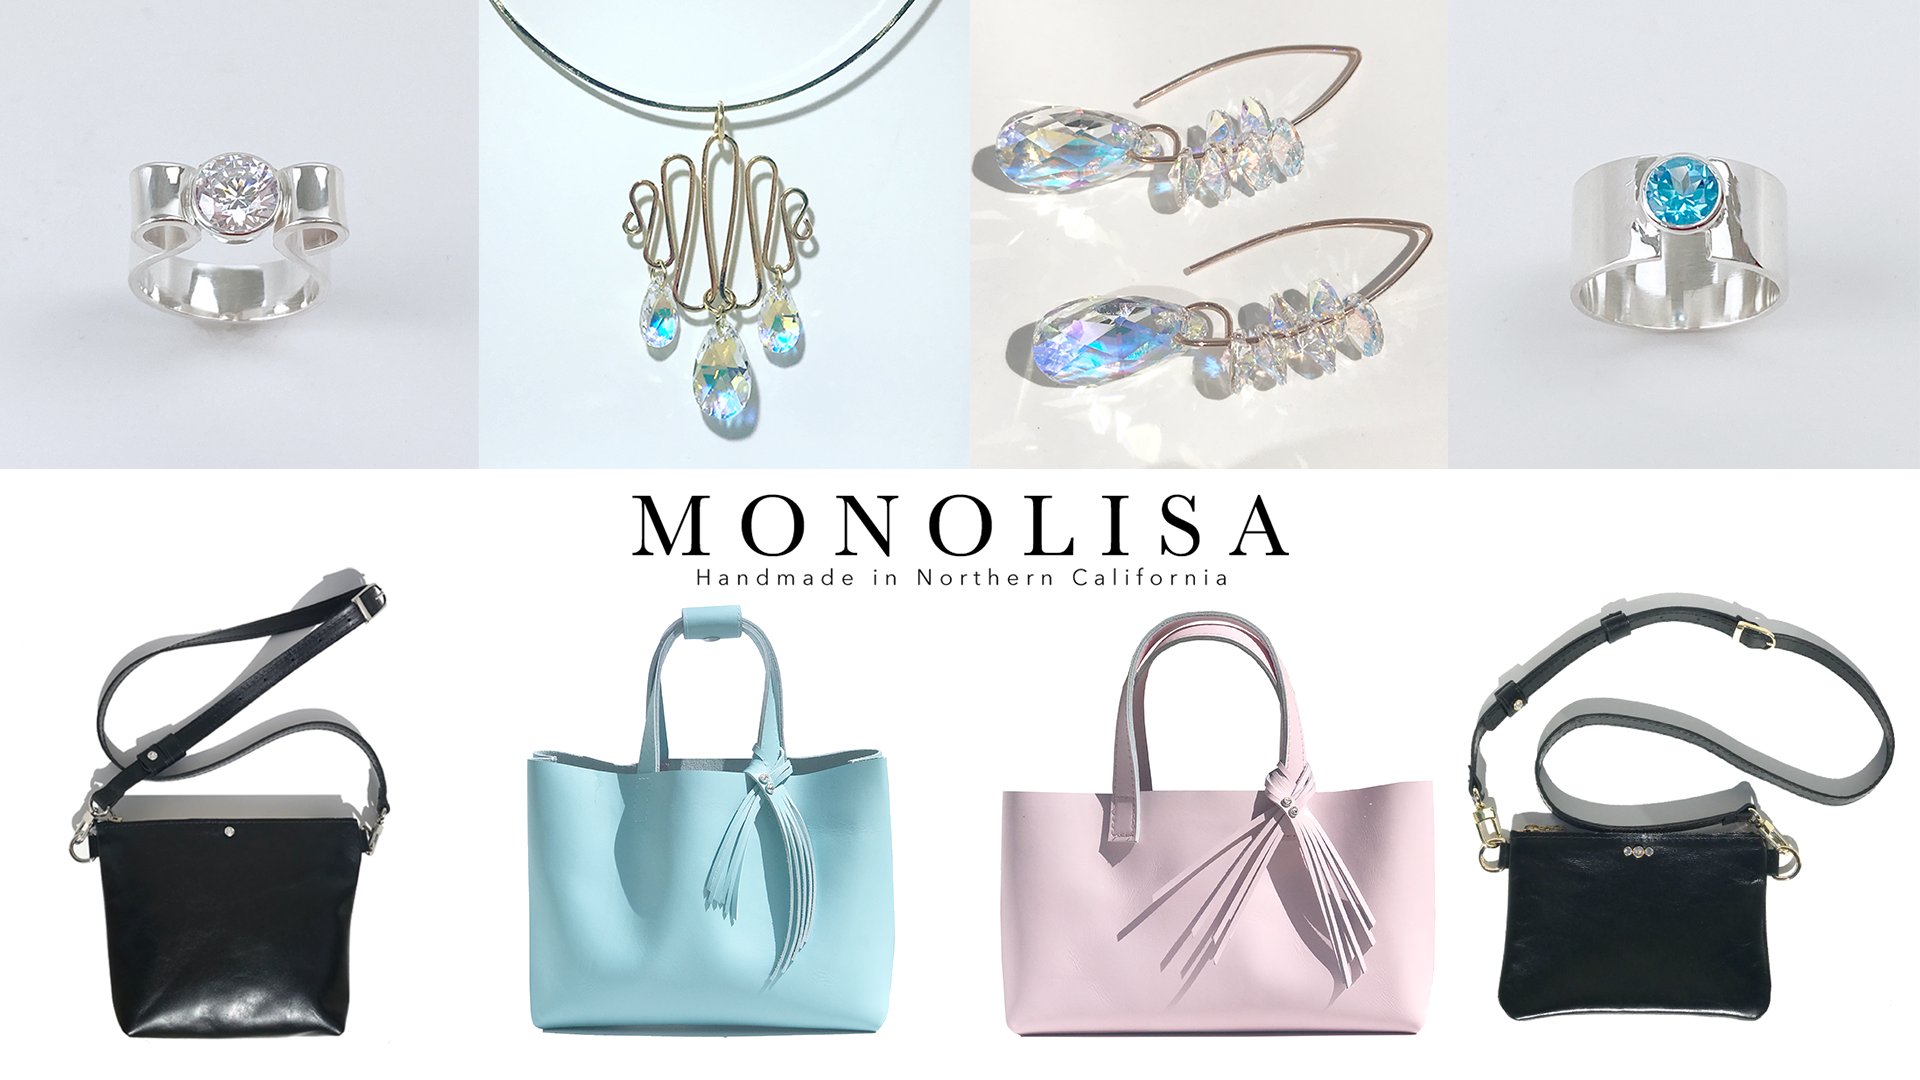 2021 California Events Featuring MONOLISA - Fine Art Events, Festivals and Jewelry Shows